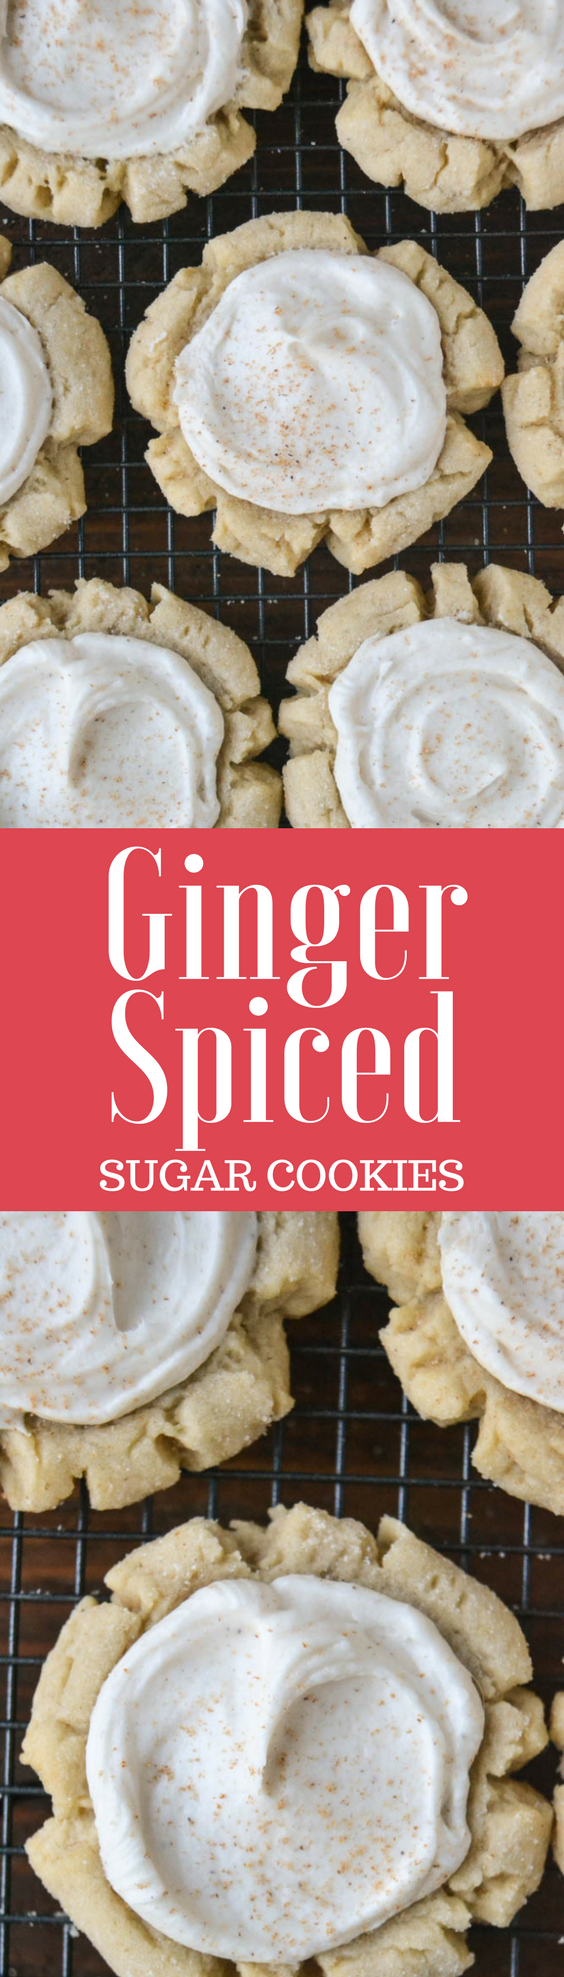 Ginger Spiced Sugar Cookies (Swig Copycat) ~ big fat buttery supermarket style frosted sugar cookies!